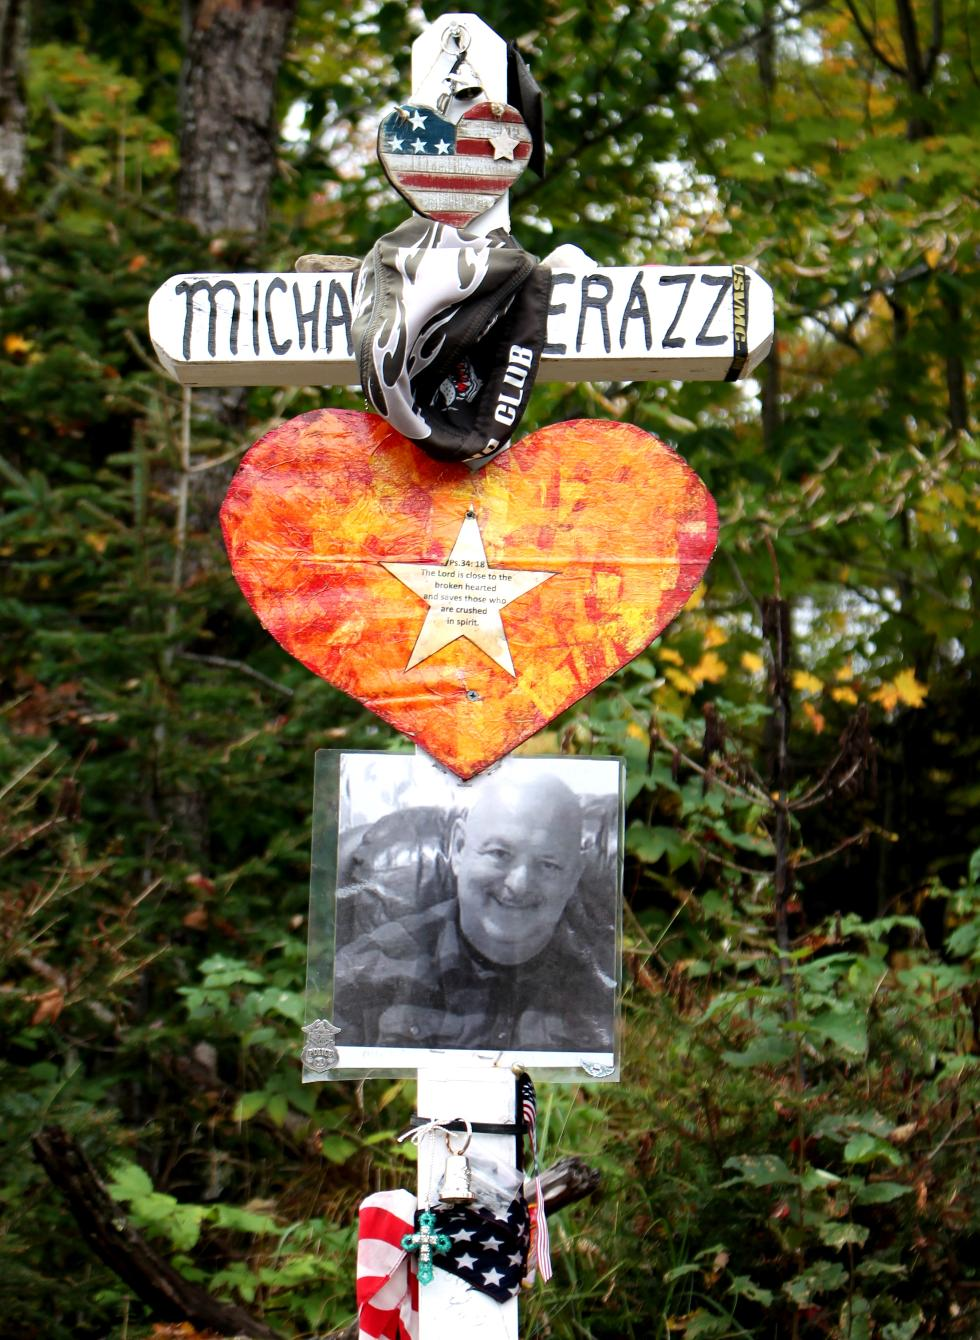 Michael Ferazzi lost in Randolph NH Motorcycle Accident